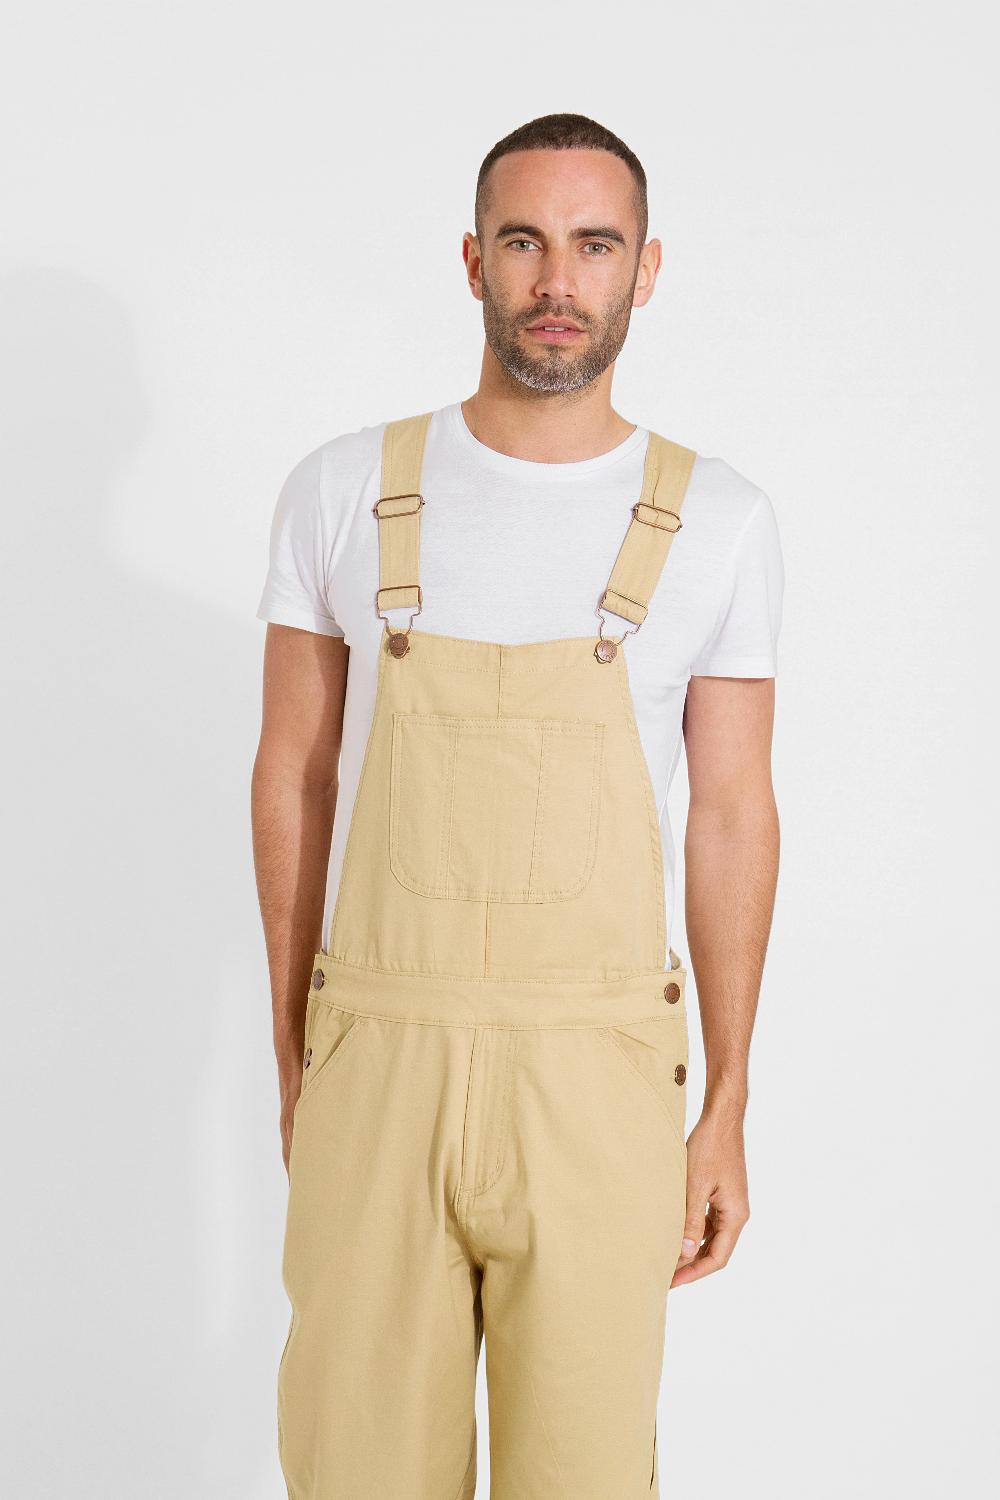 Frontal pose cropping bottom third, wearing loose fitting cotton dungaree shorts, with focus on side buttons and adjustable straps.